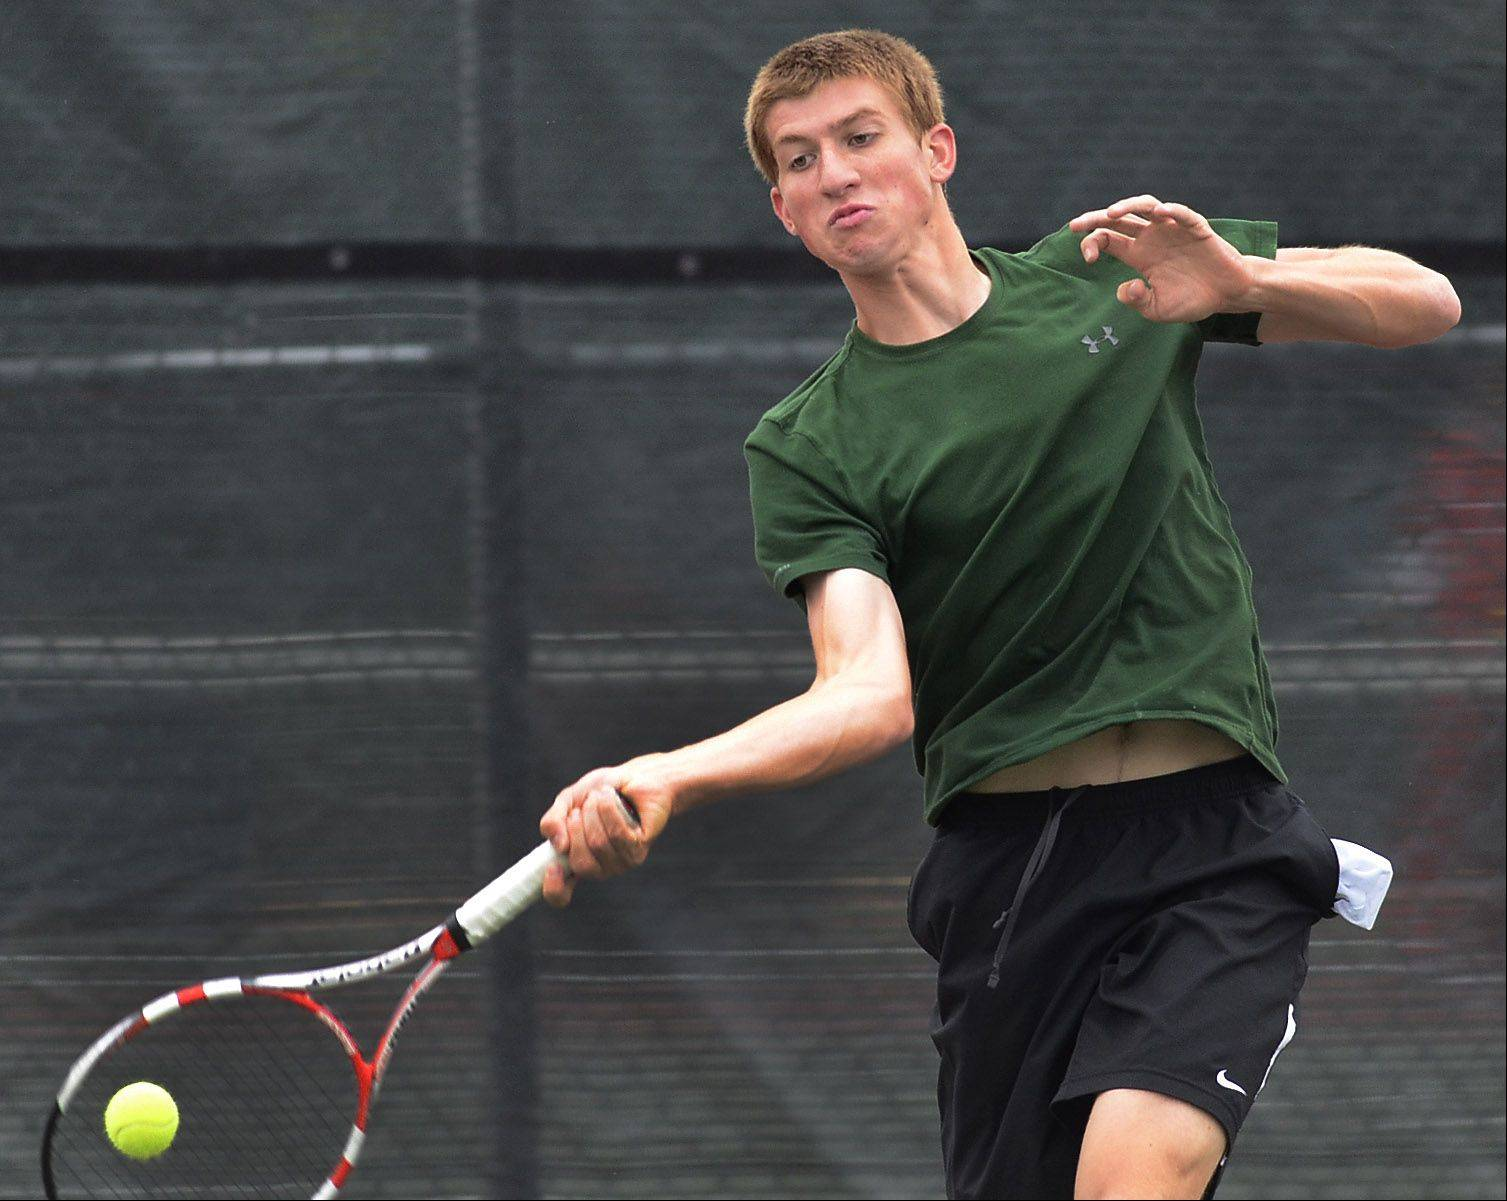 Eric Marbach of Waubonsie Valley goes to his forehand during first-round singles play against Justin Bowman of St. Charles East on Thursday at Rolling Meadows.